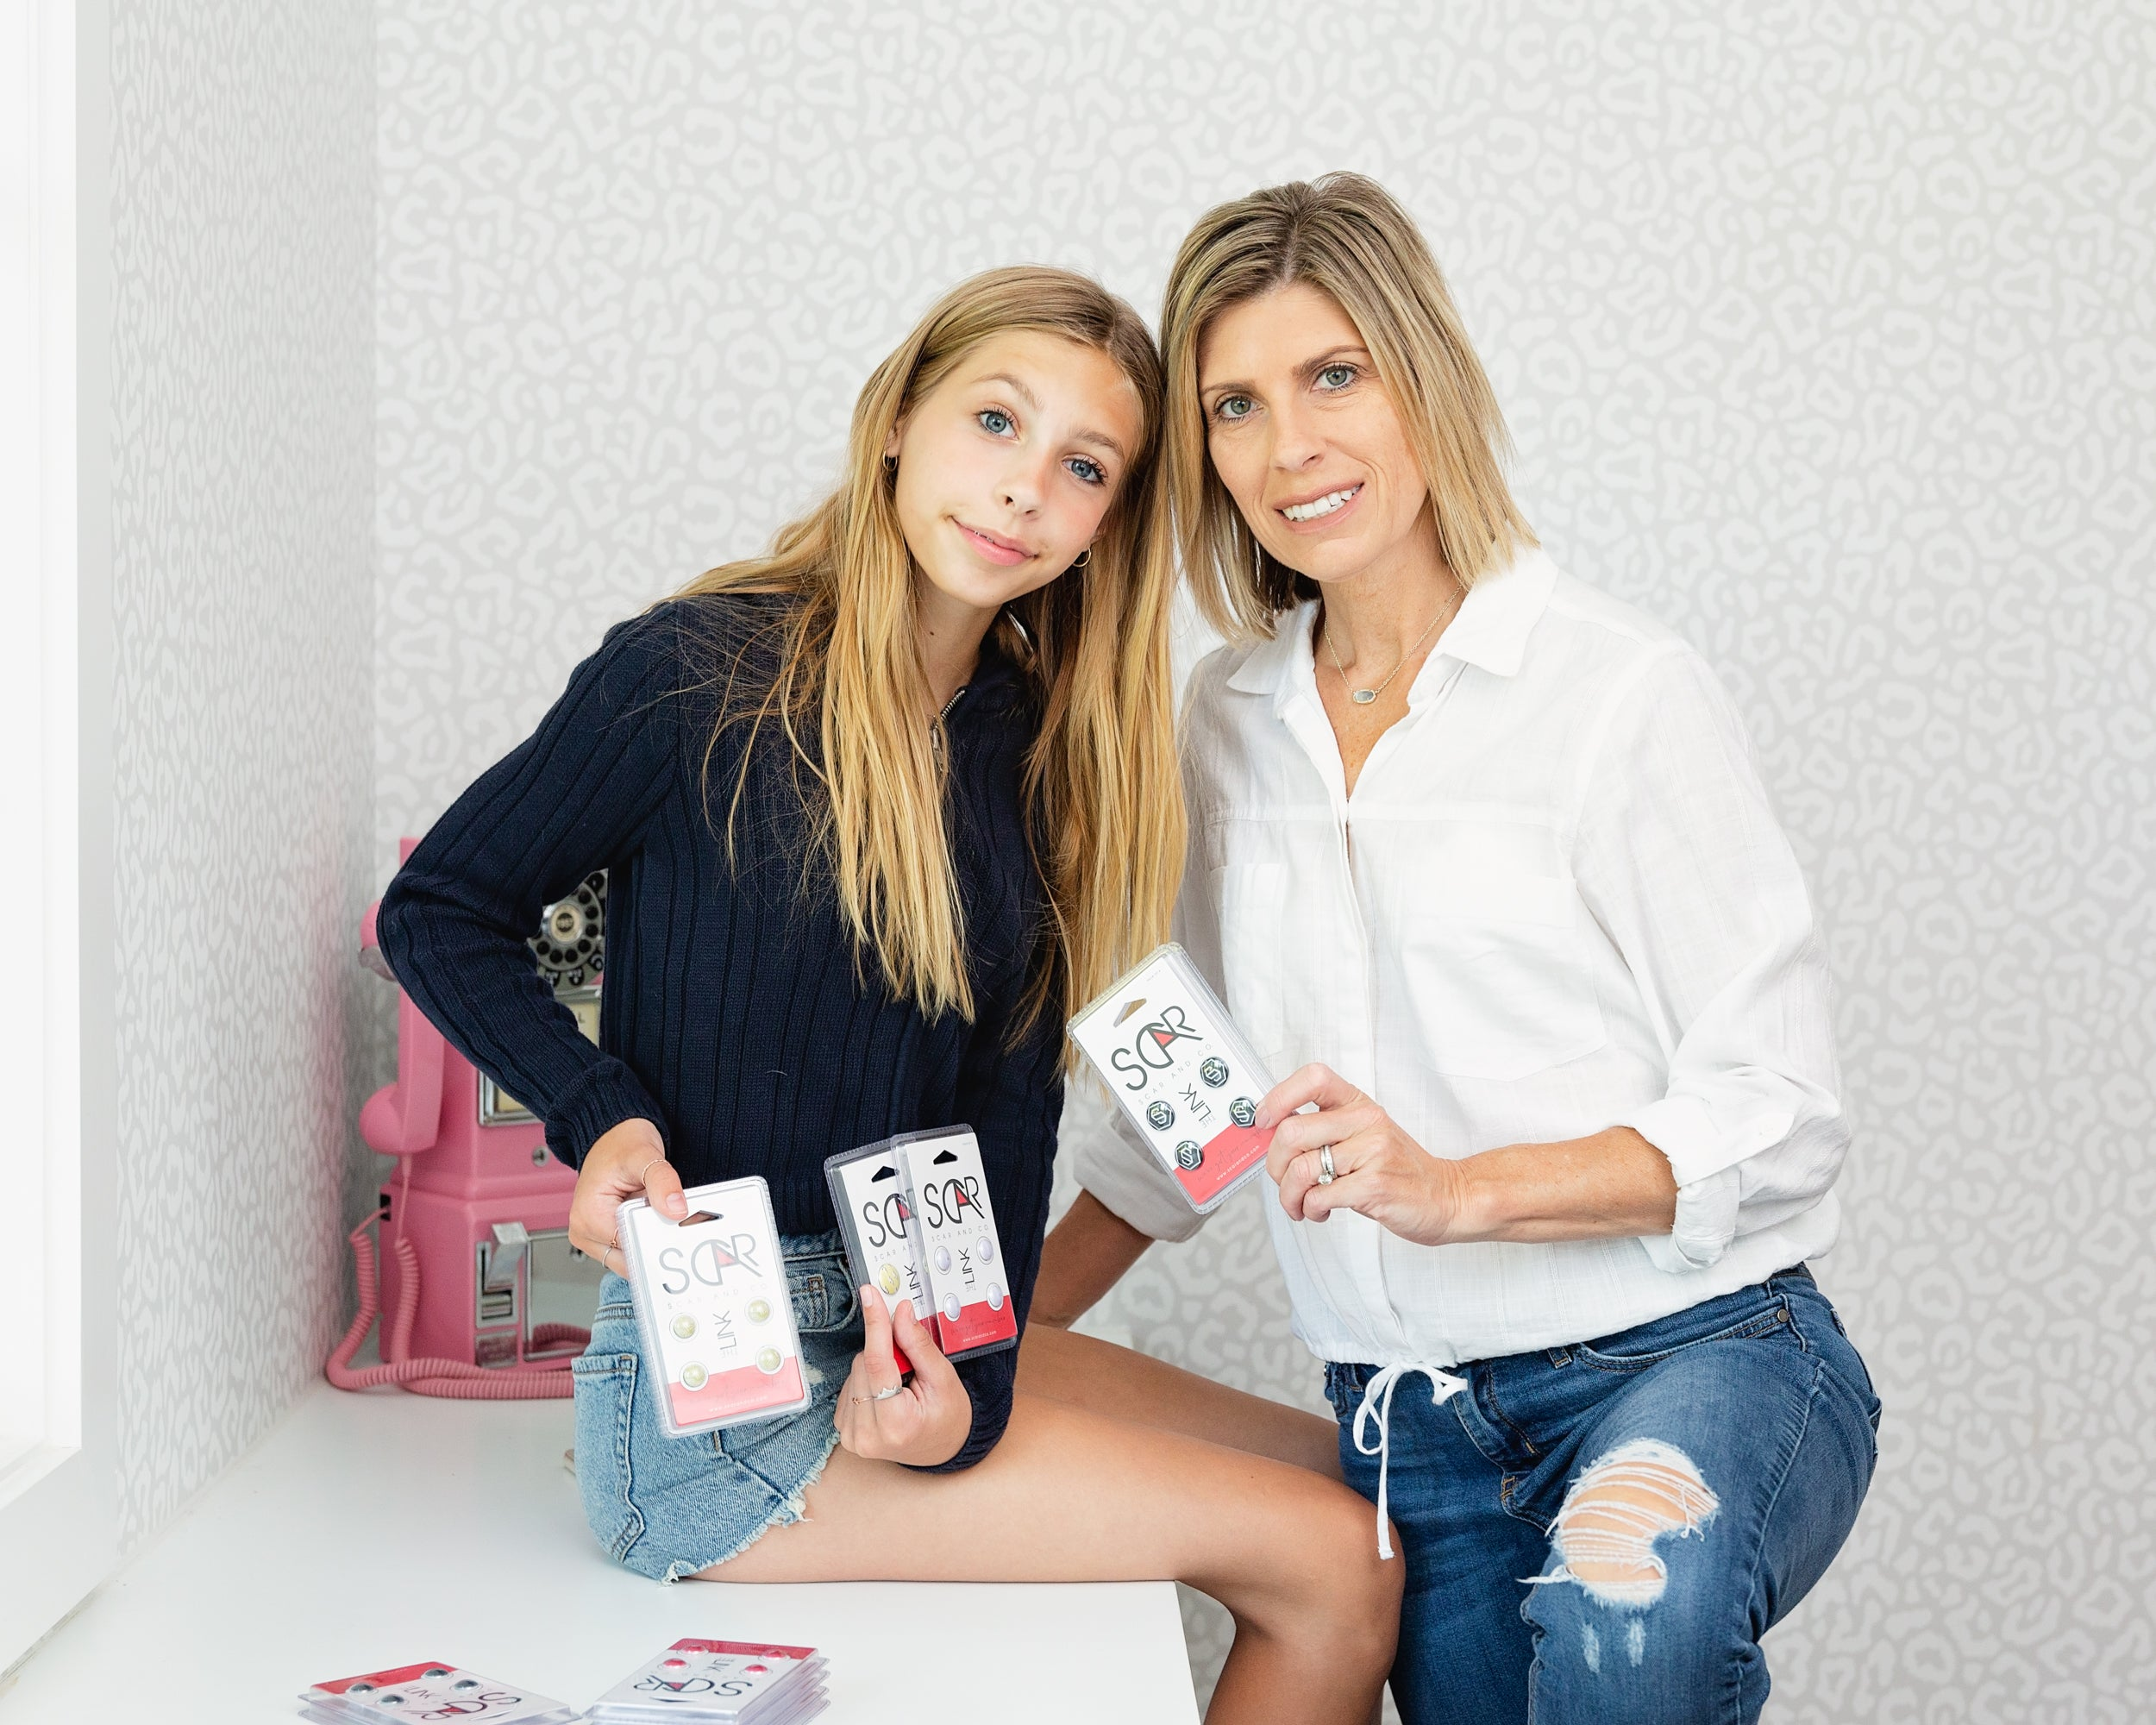 Stephanie and Scarlet - co-founders of Scar and Co.